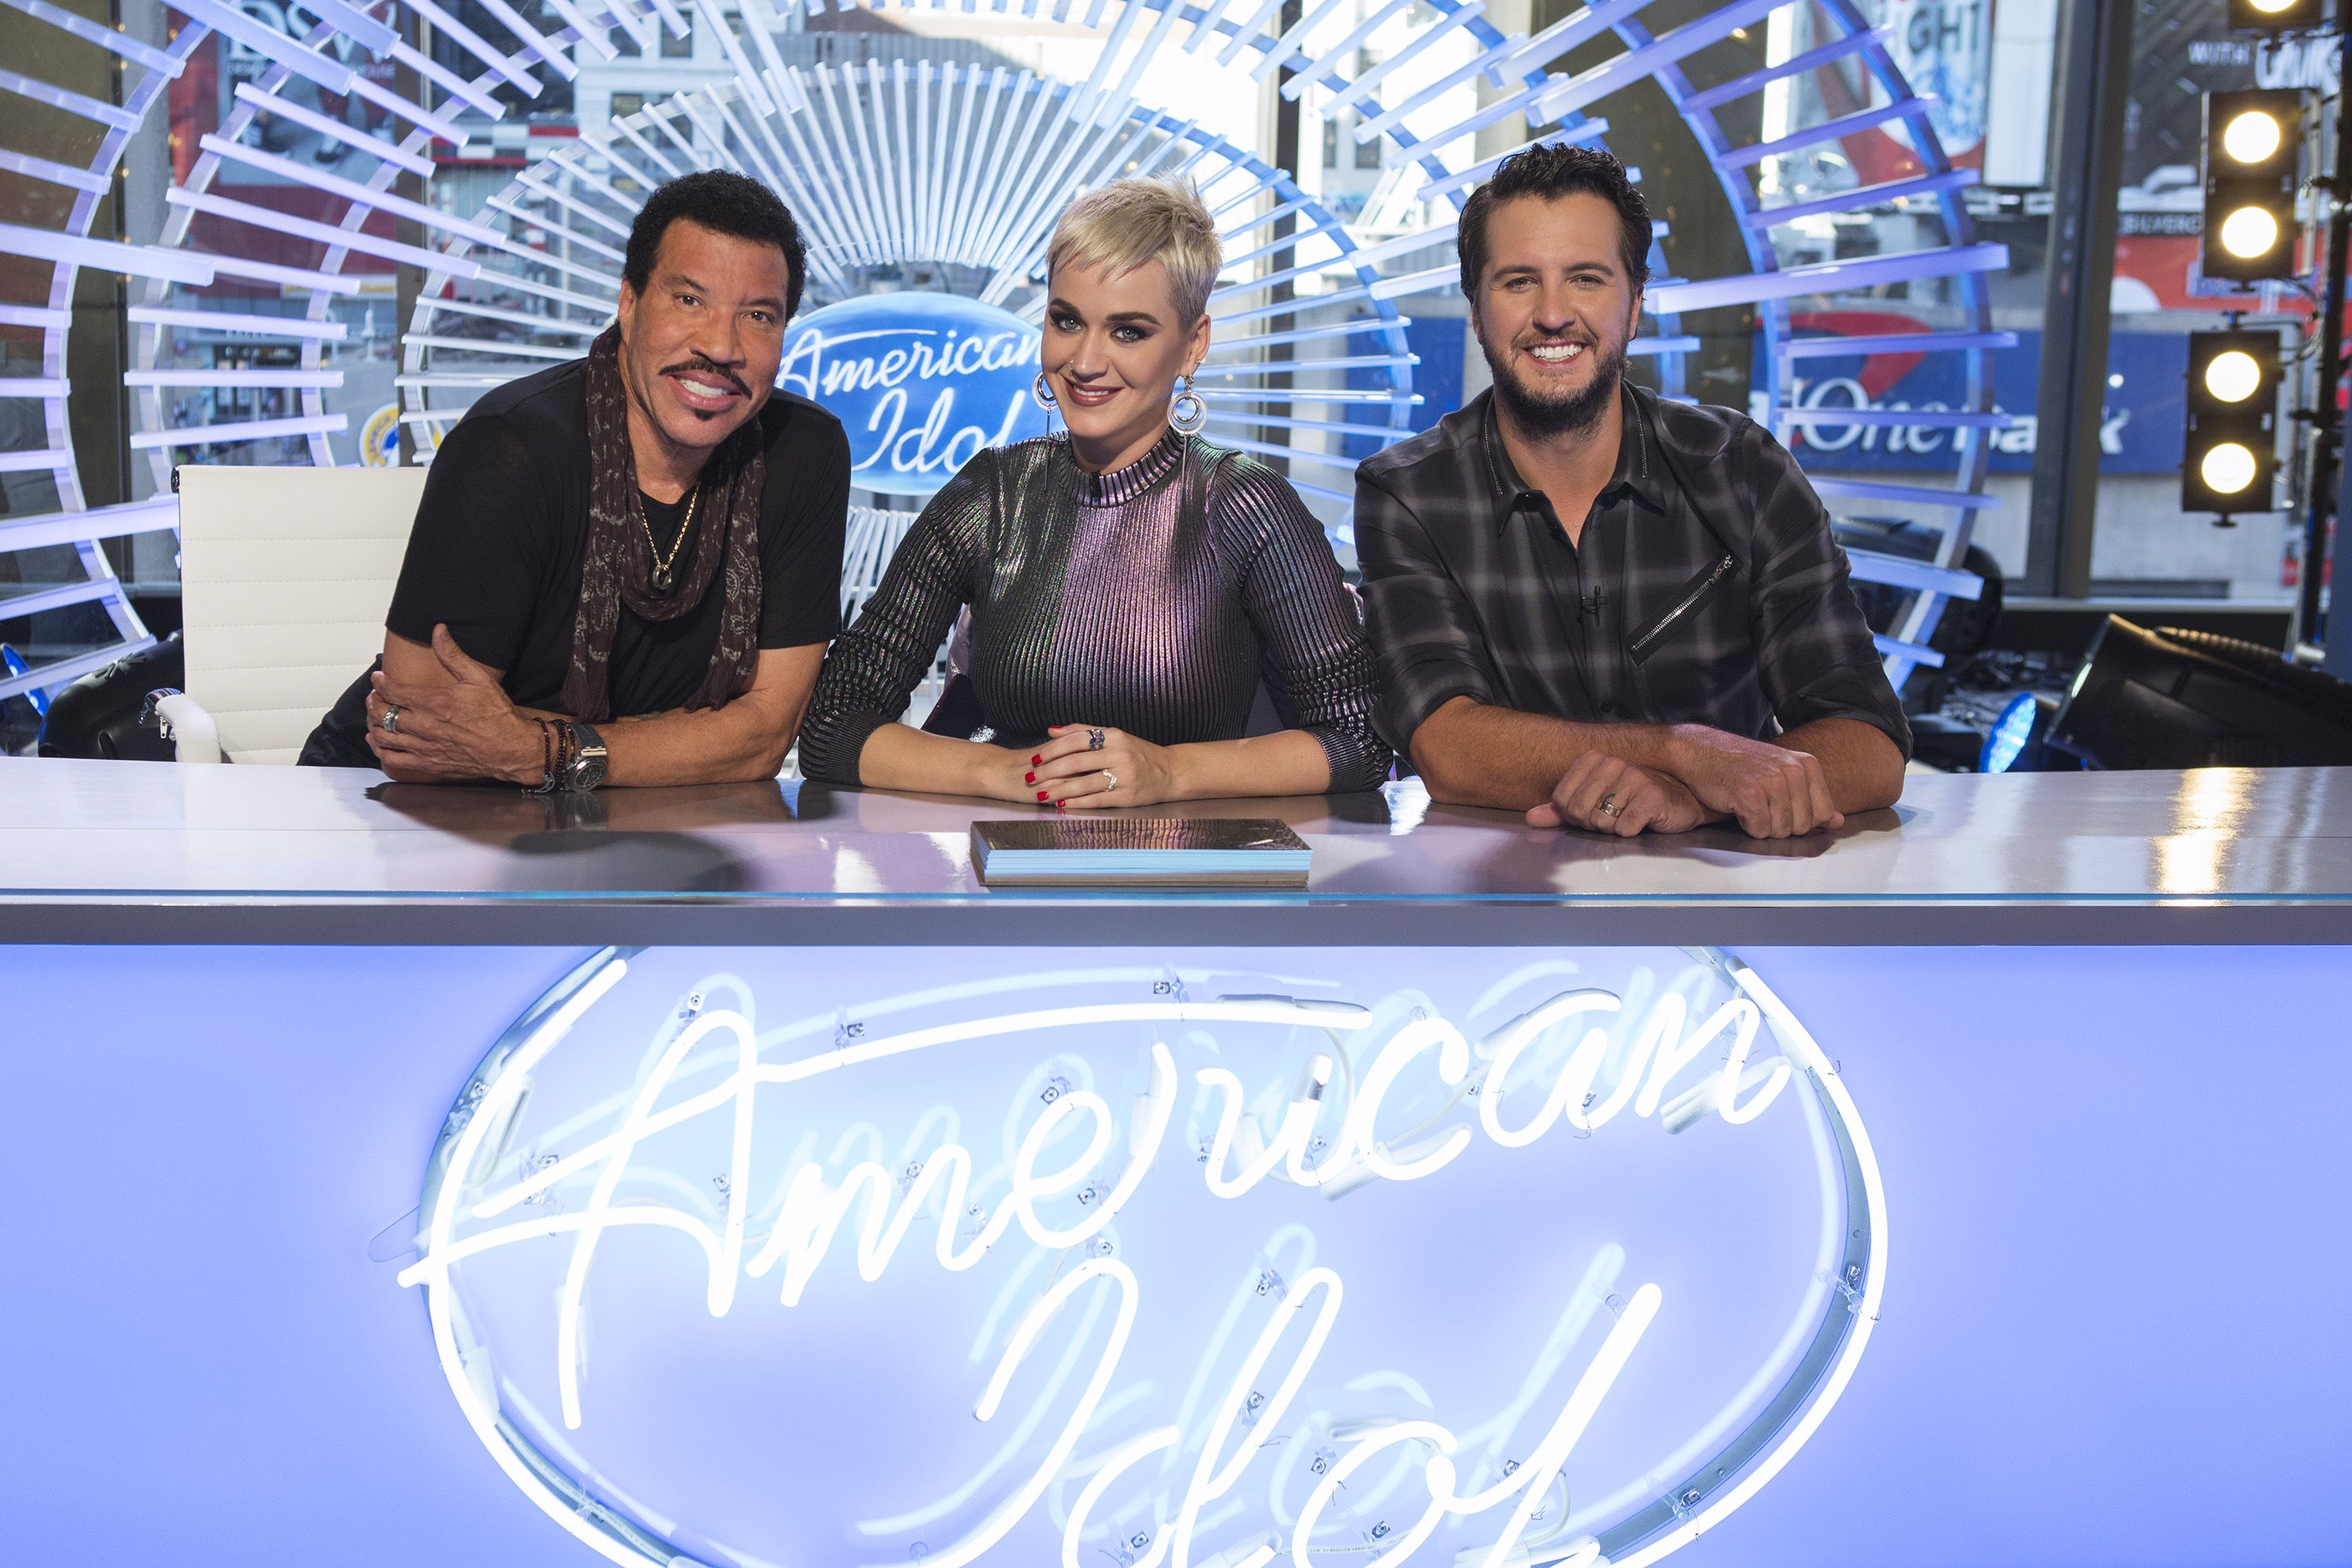 What To Know About American Idol 2019 Season 2 Including Judges